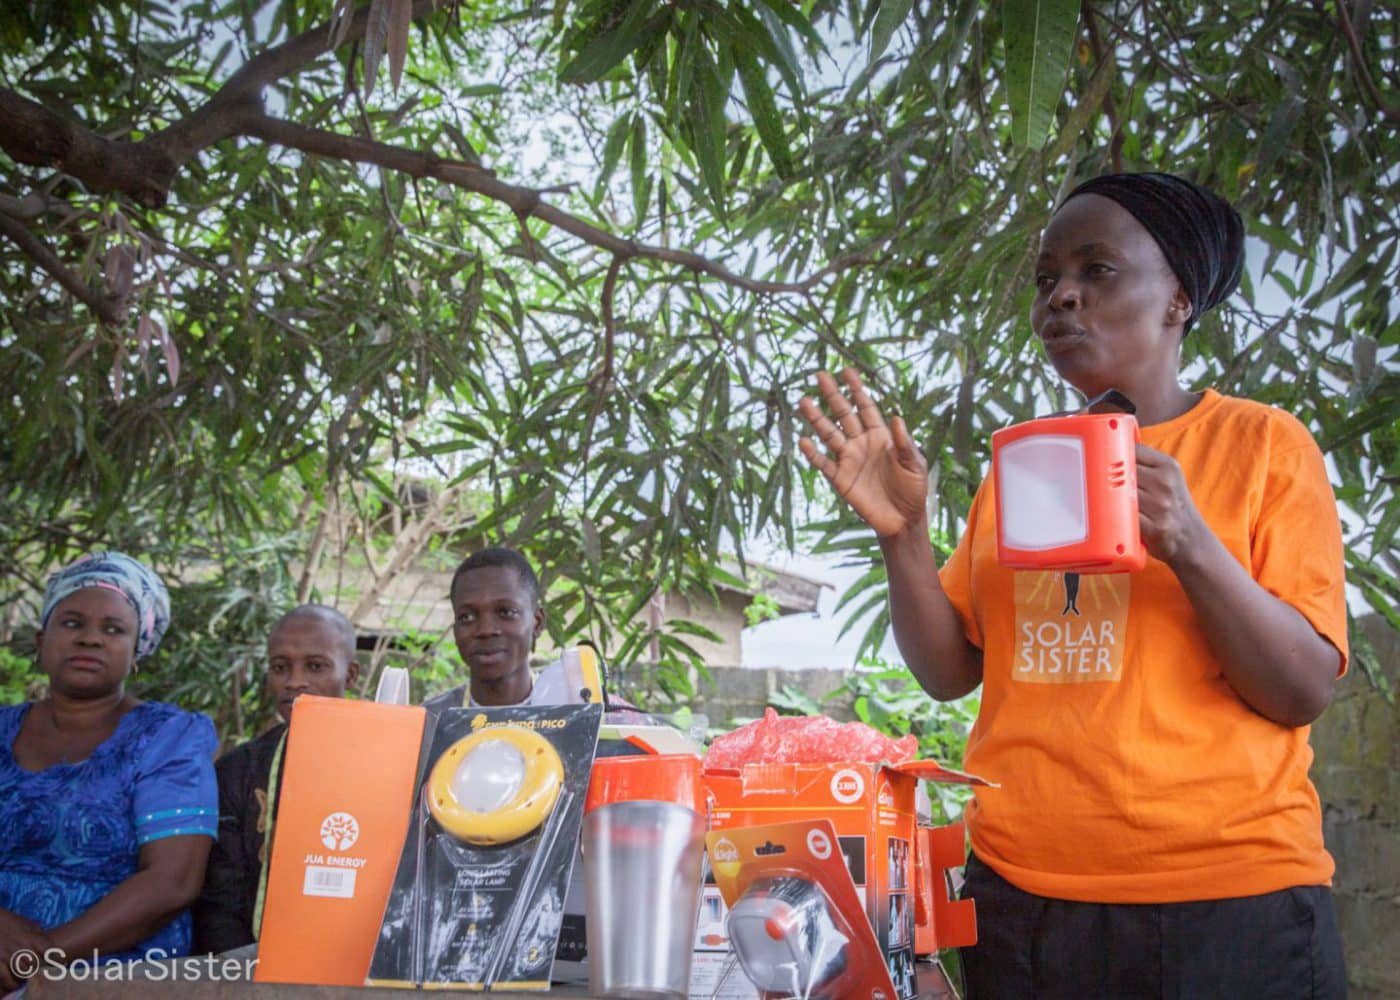 ENERGIA receives new funding to continue its Women's Economic Empowerment Programme